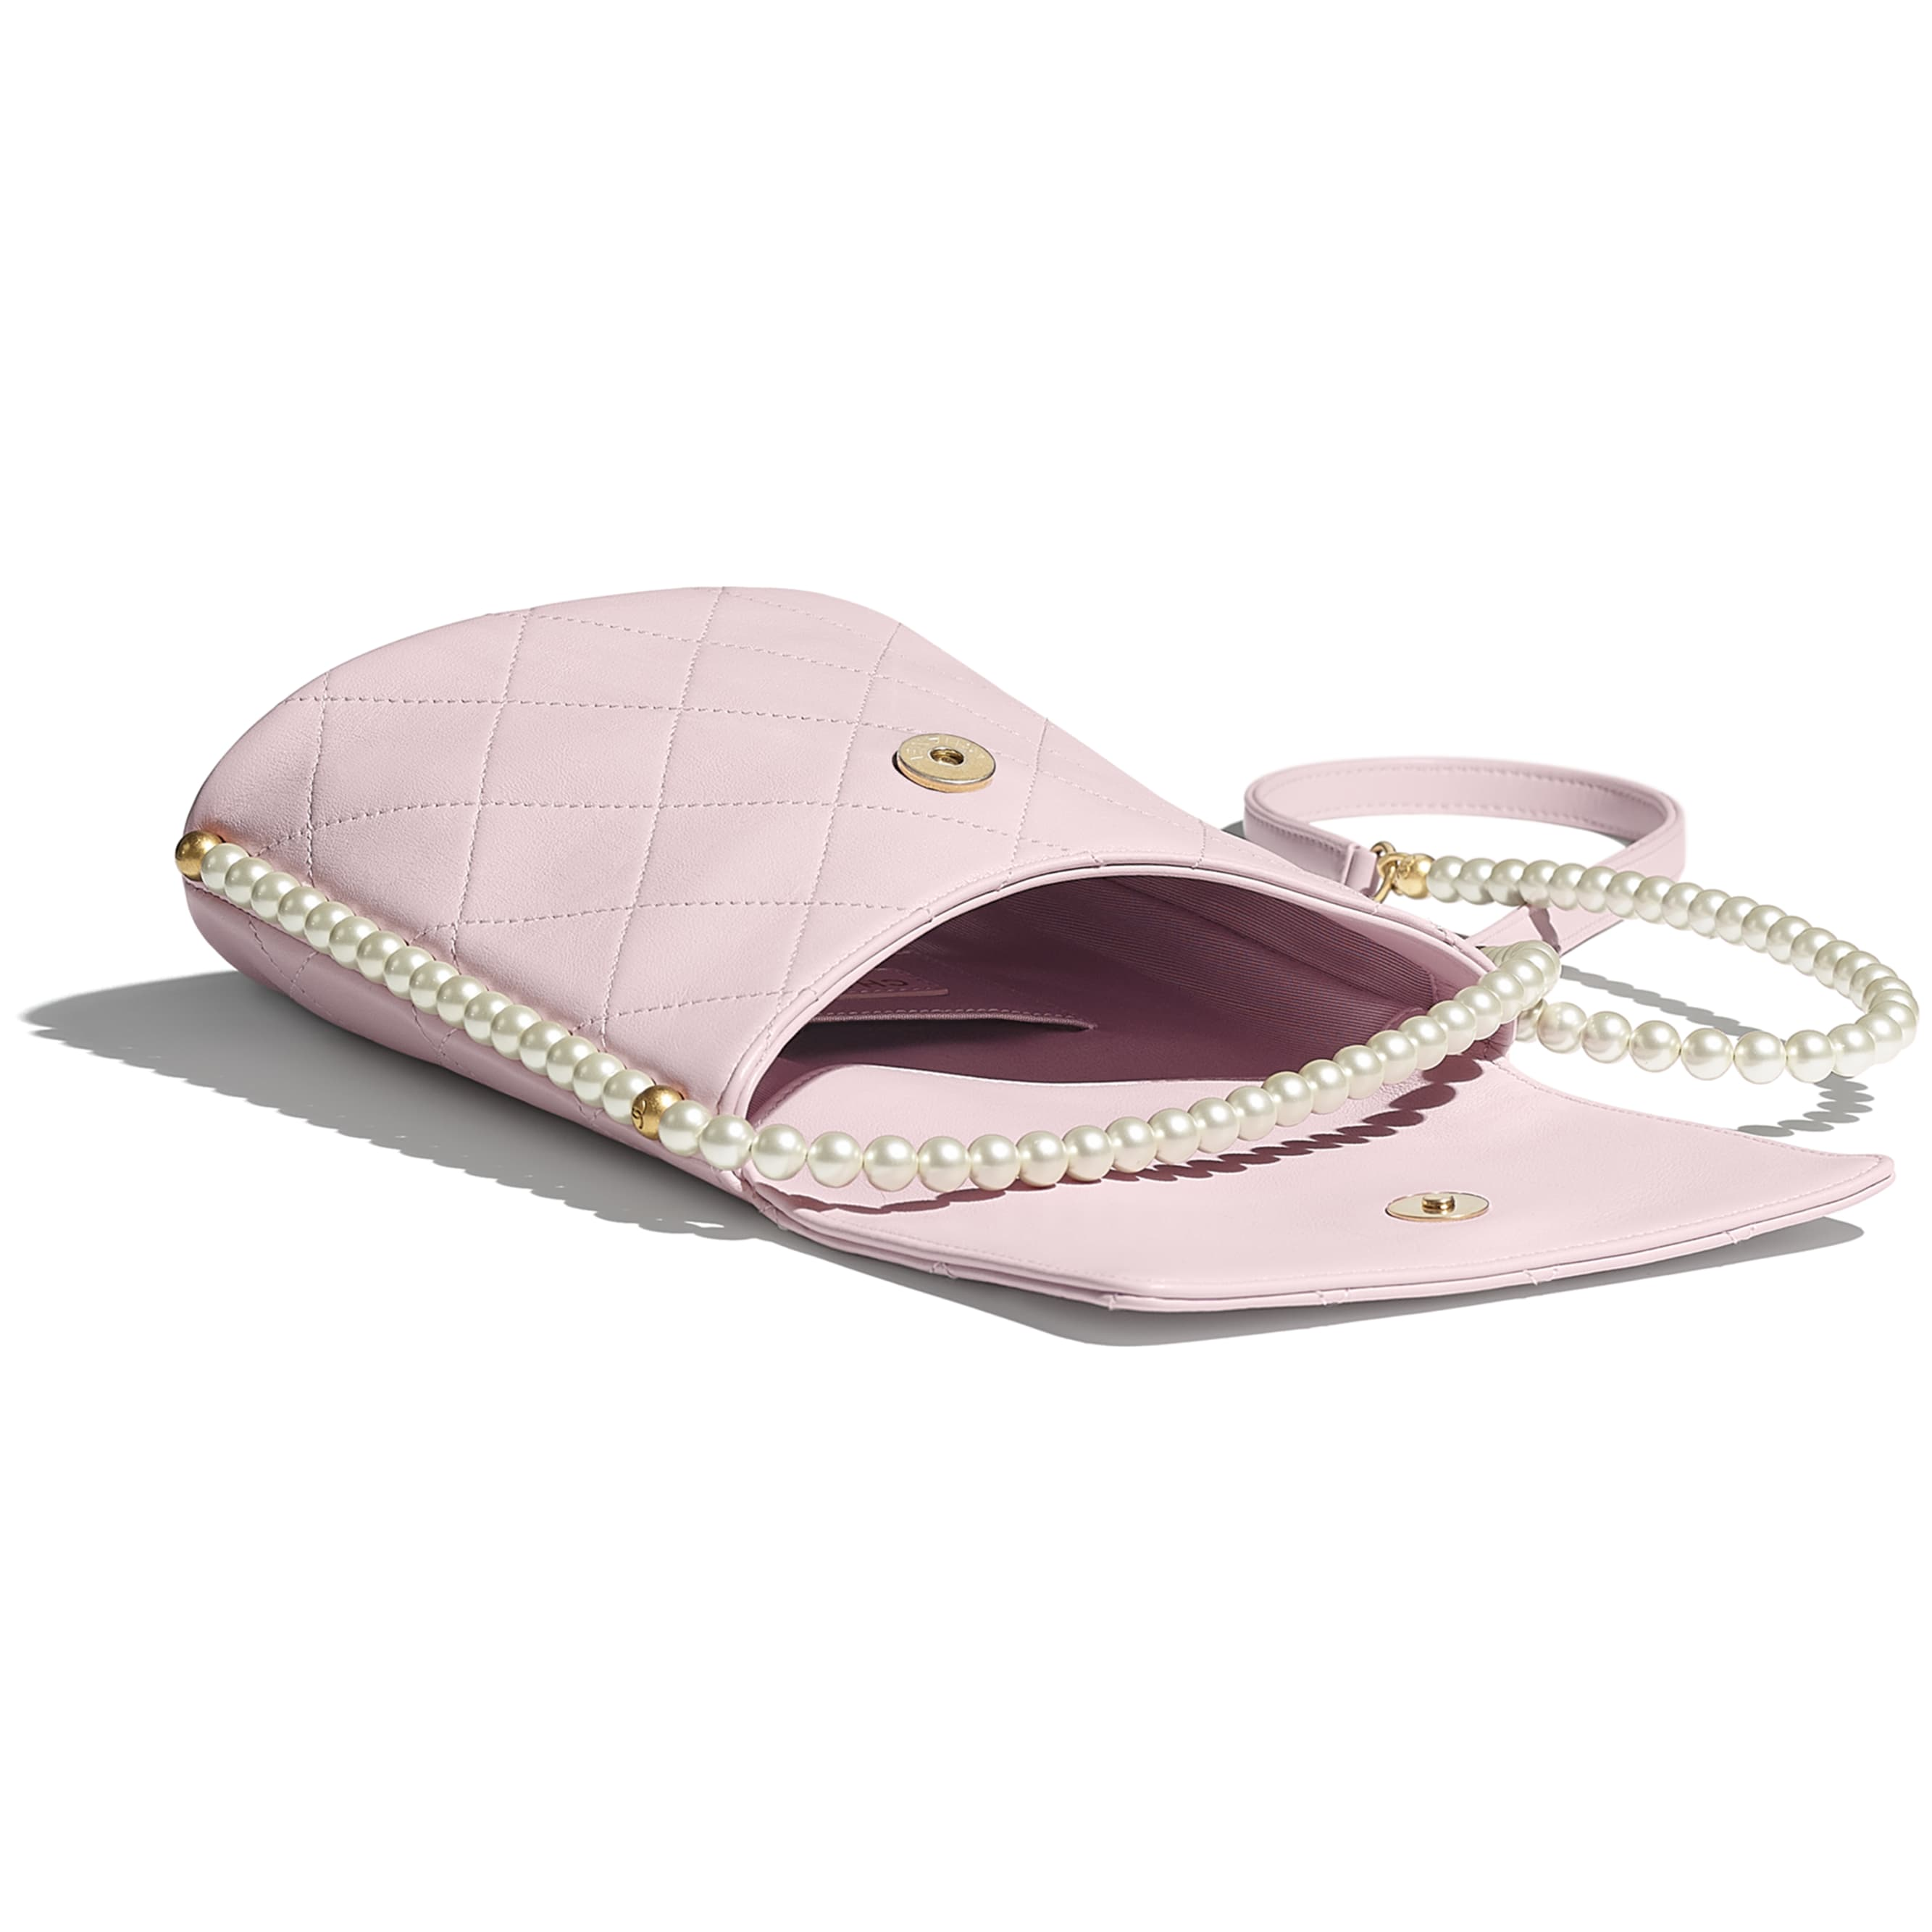 Small Hobo Bag - Light Pink - Calfskin, Imitation Pearls & Gold-Tone Metal - CHANEL - Other view - see standard sized version